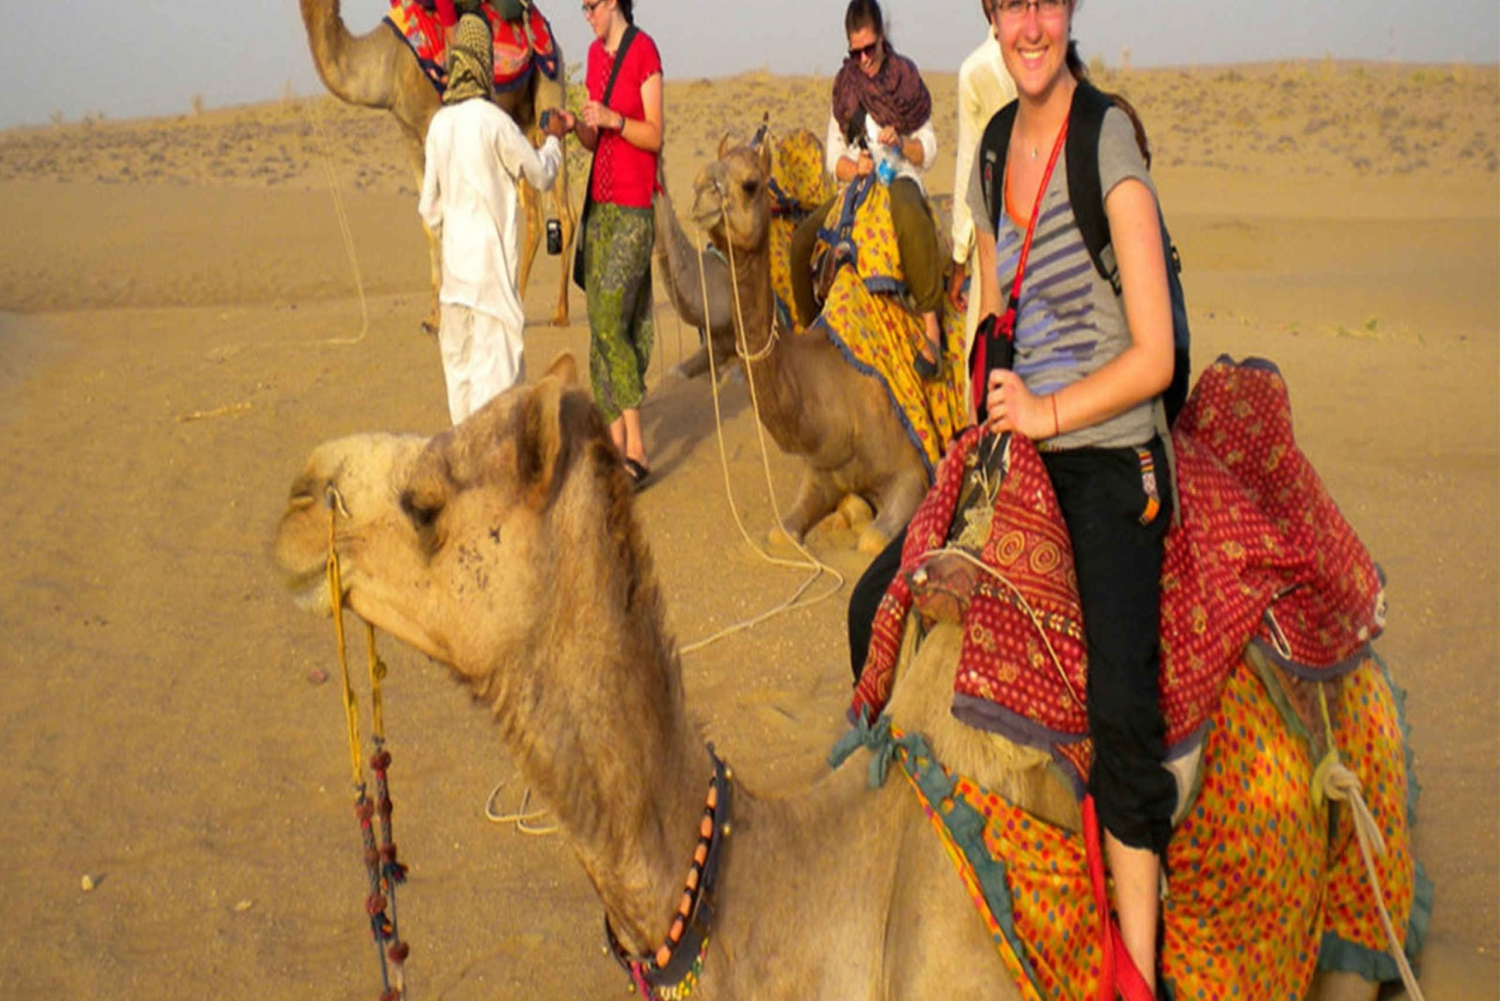 Osian Tour: Camel Riding and Gala Dinner